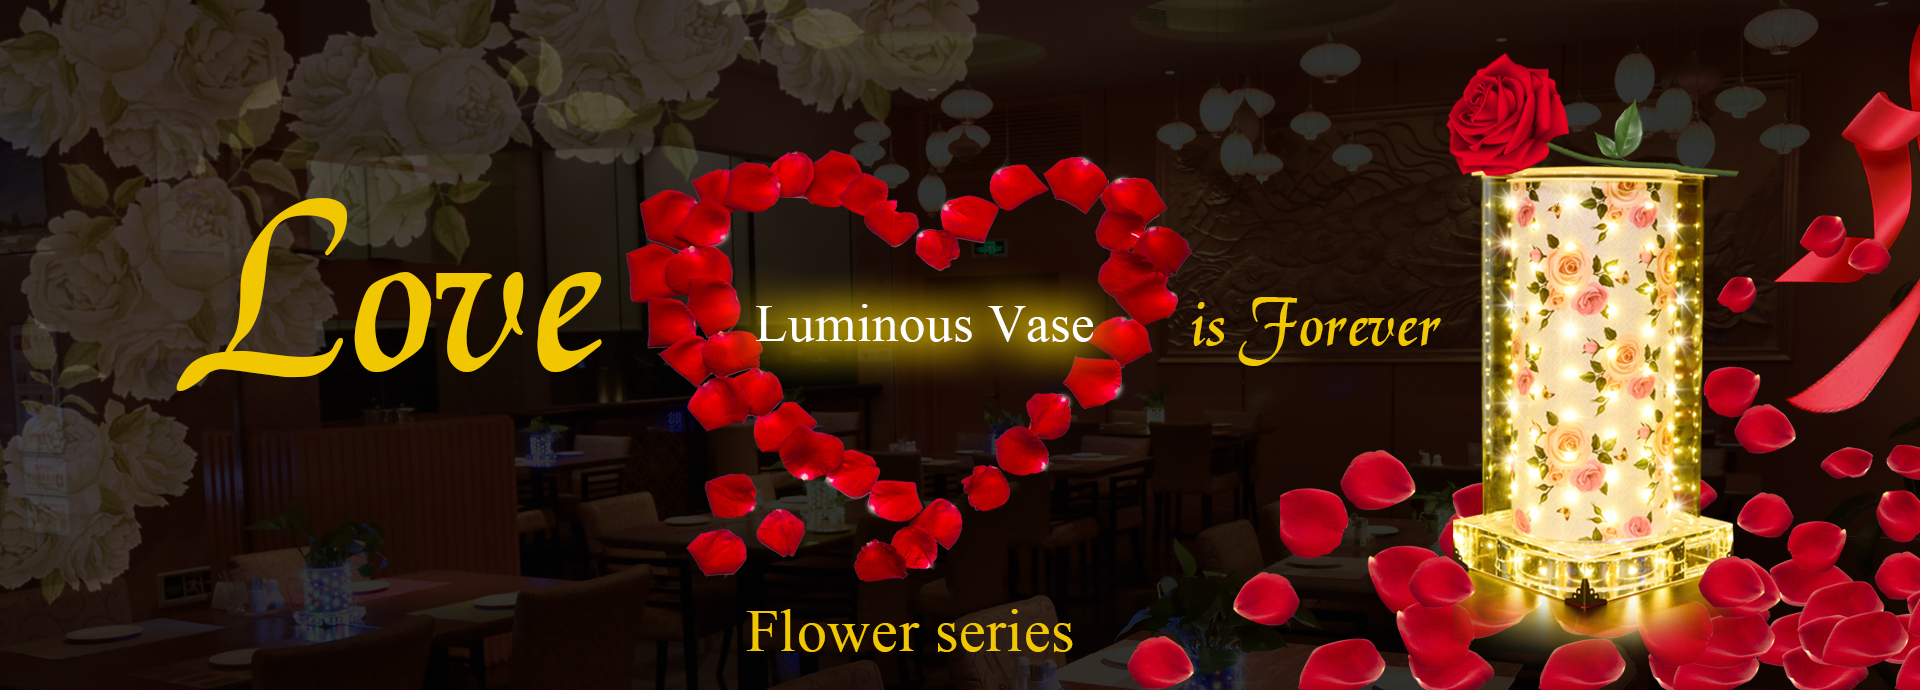 luminous vase